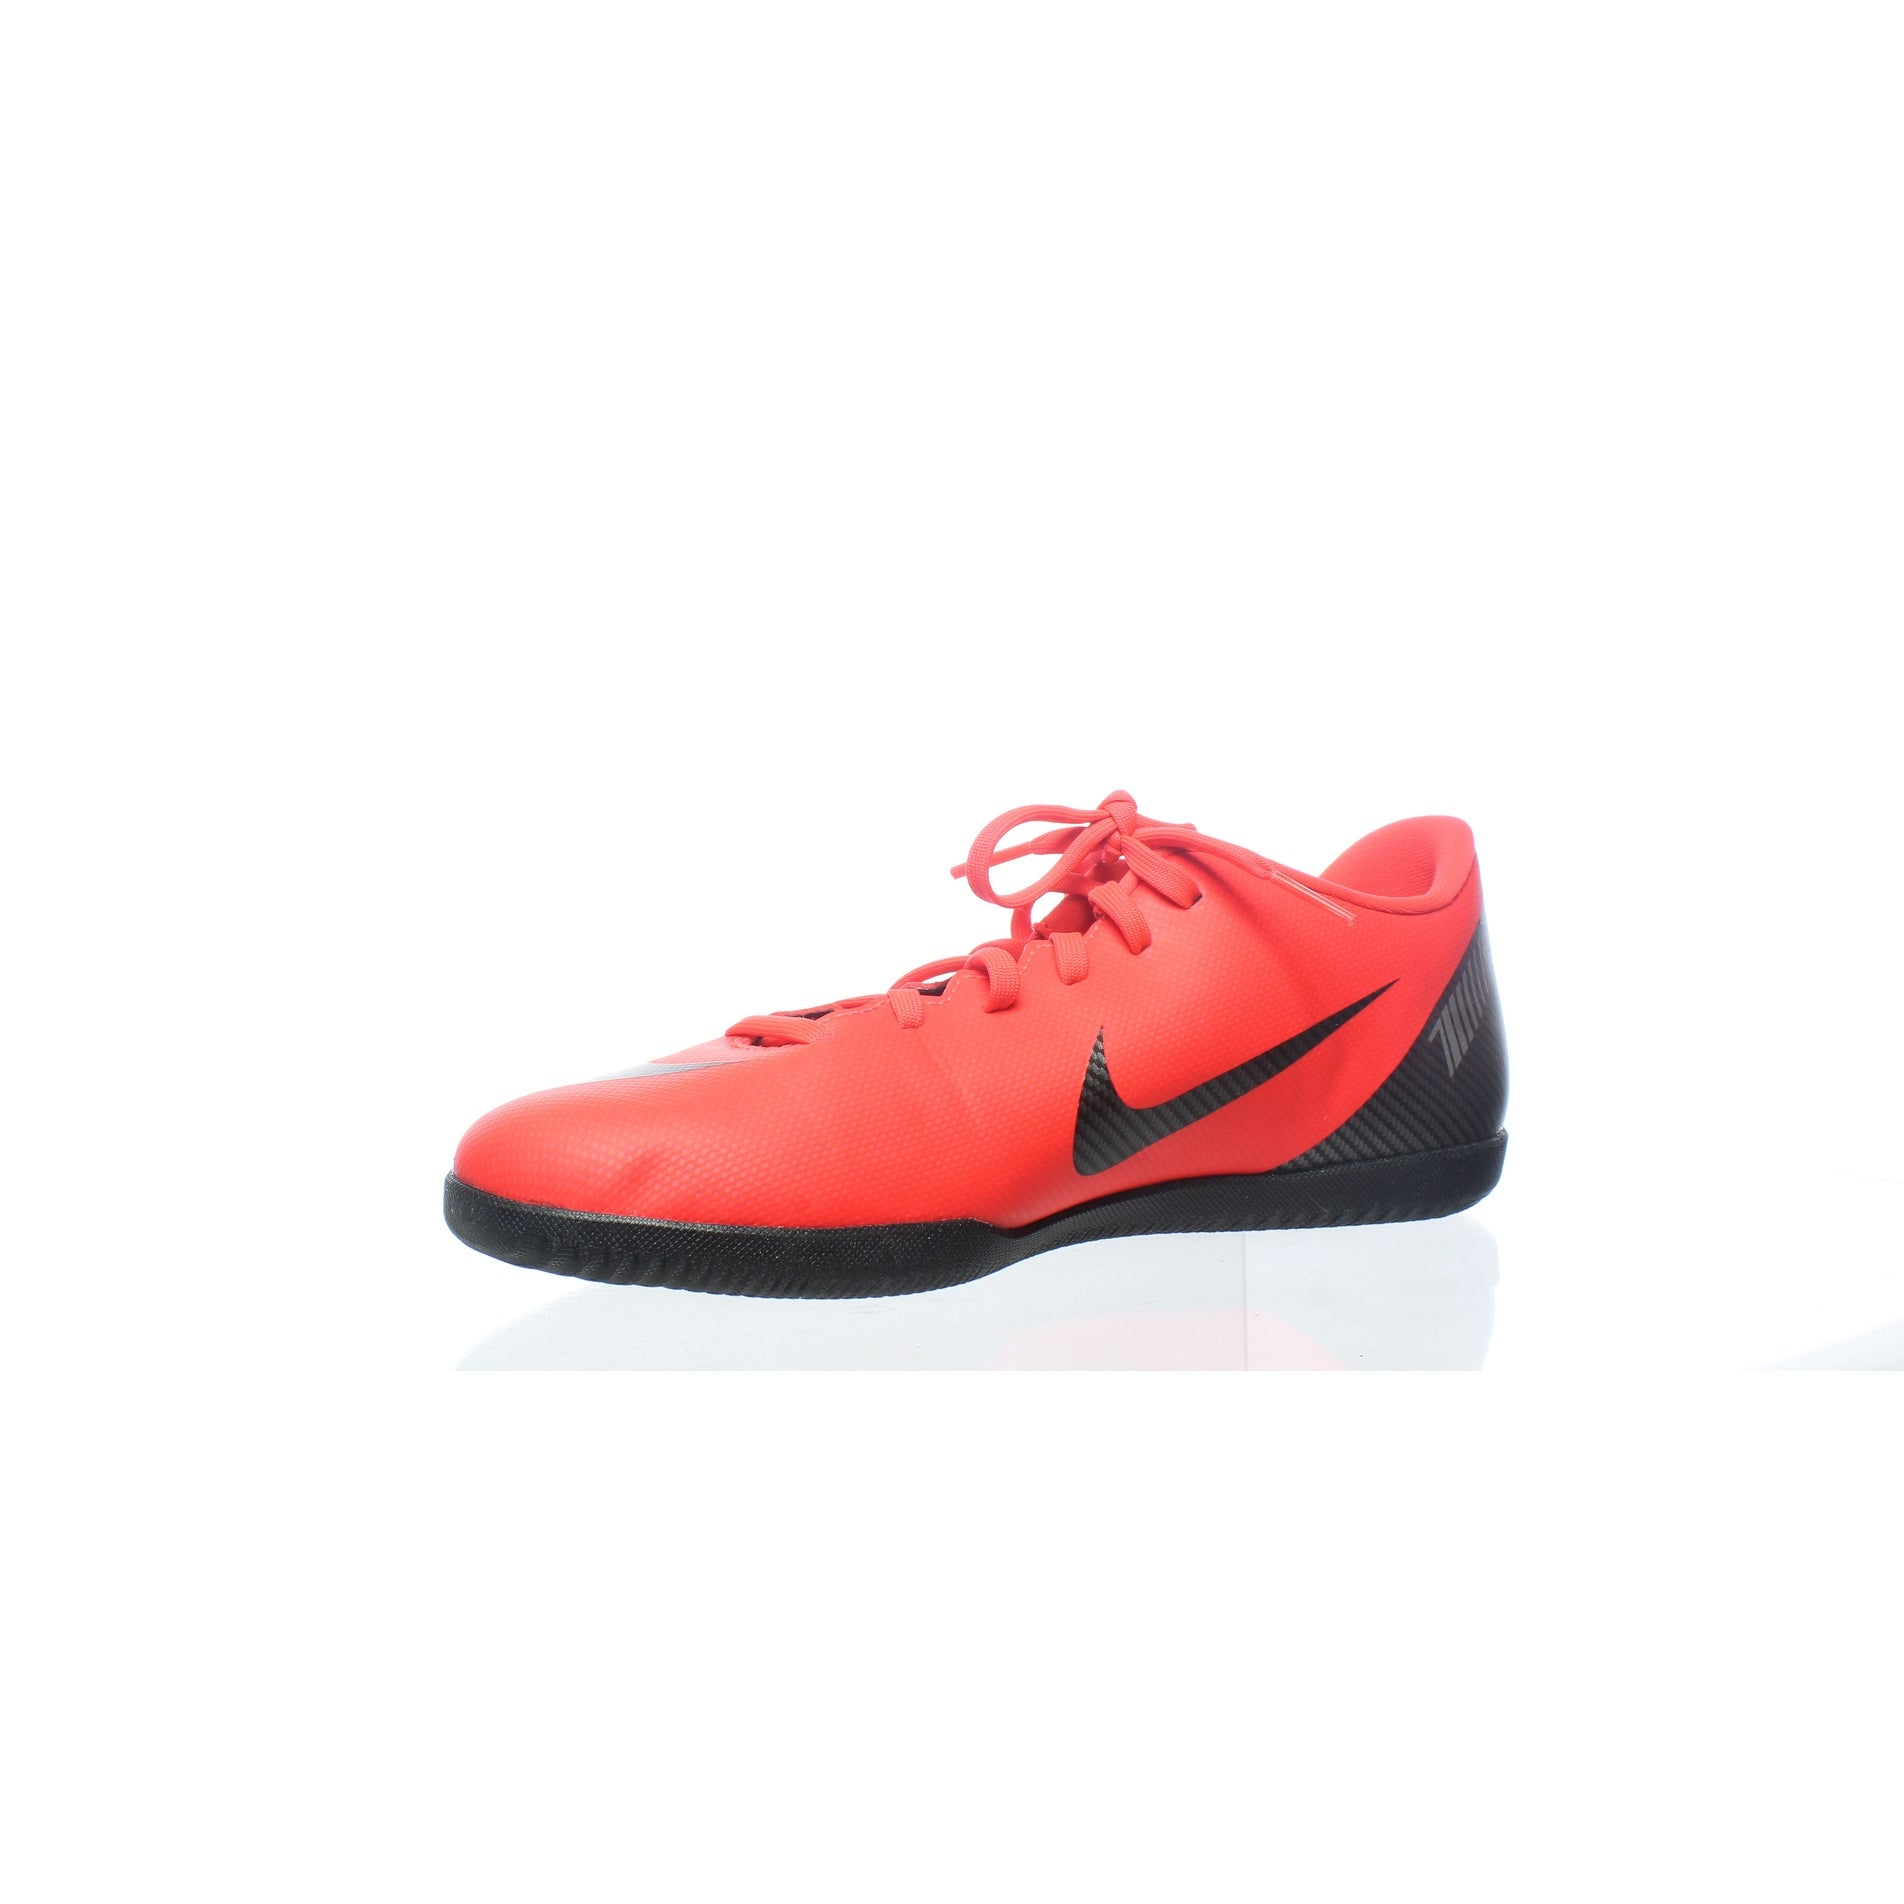 e478e77f6 Shop Nike Mens Vaporx 12 Club Ic Bright Chrimson Indoor Soccer Shoes Size 8  - Free Shipping Today - Overstock - 27876725